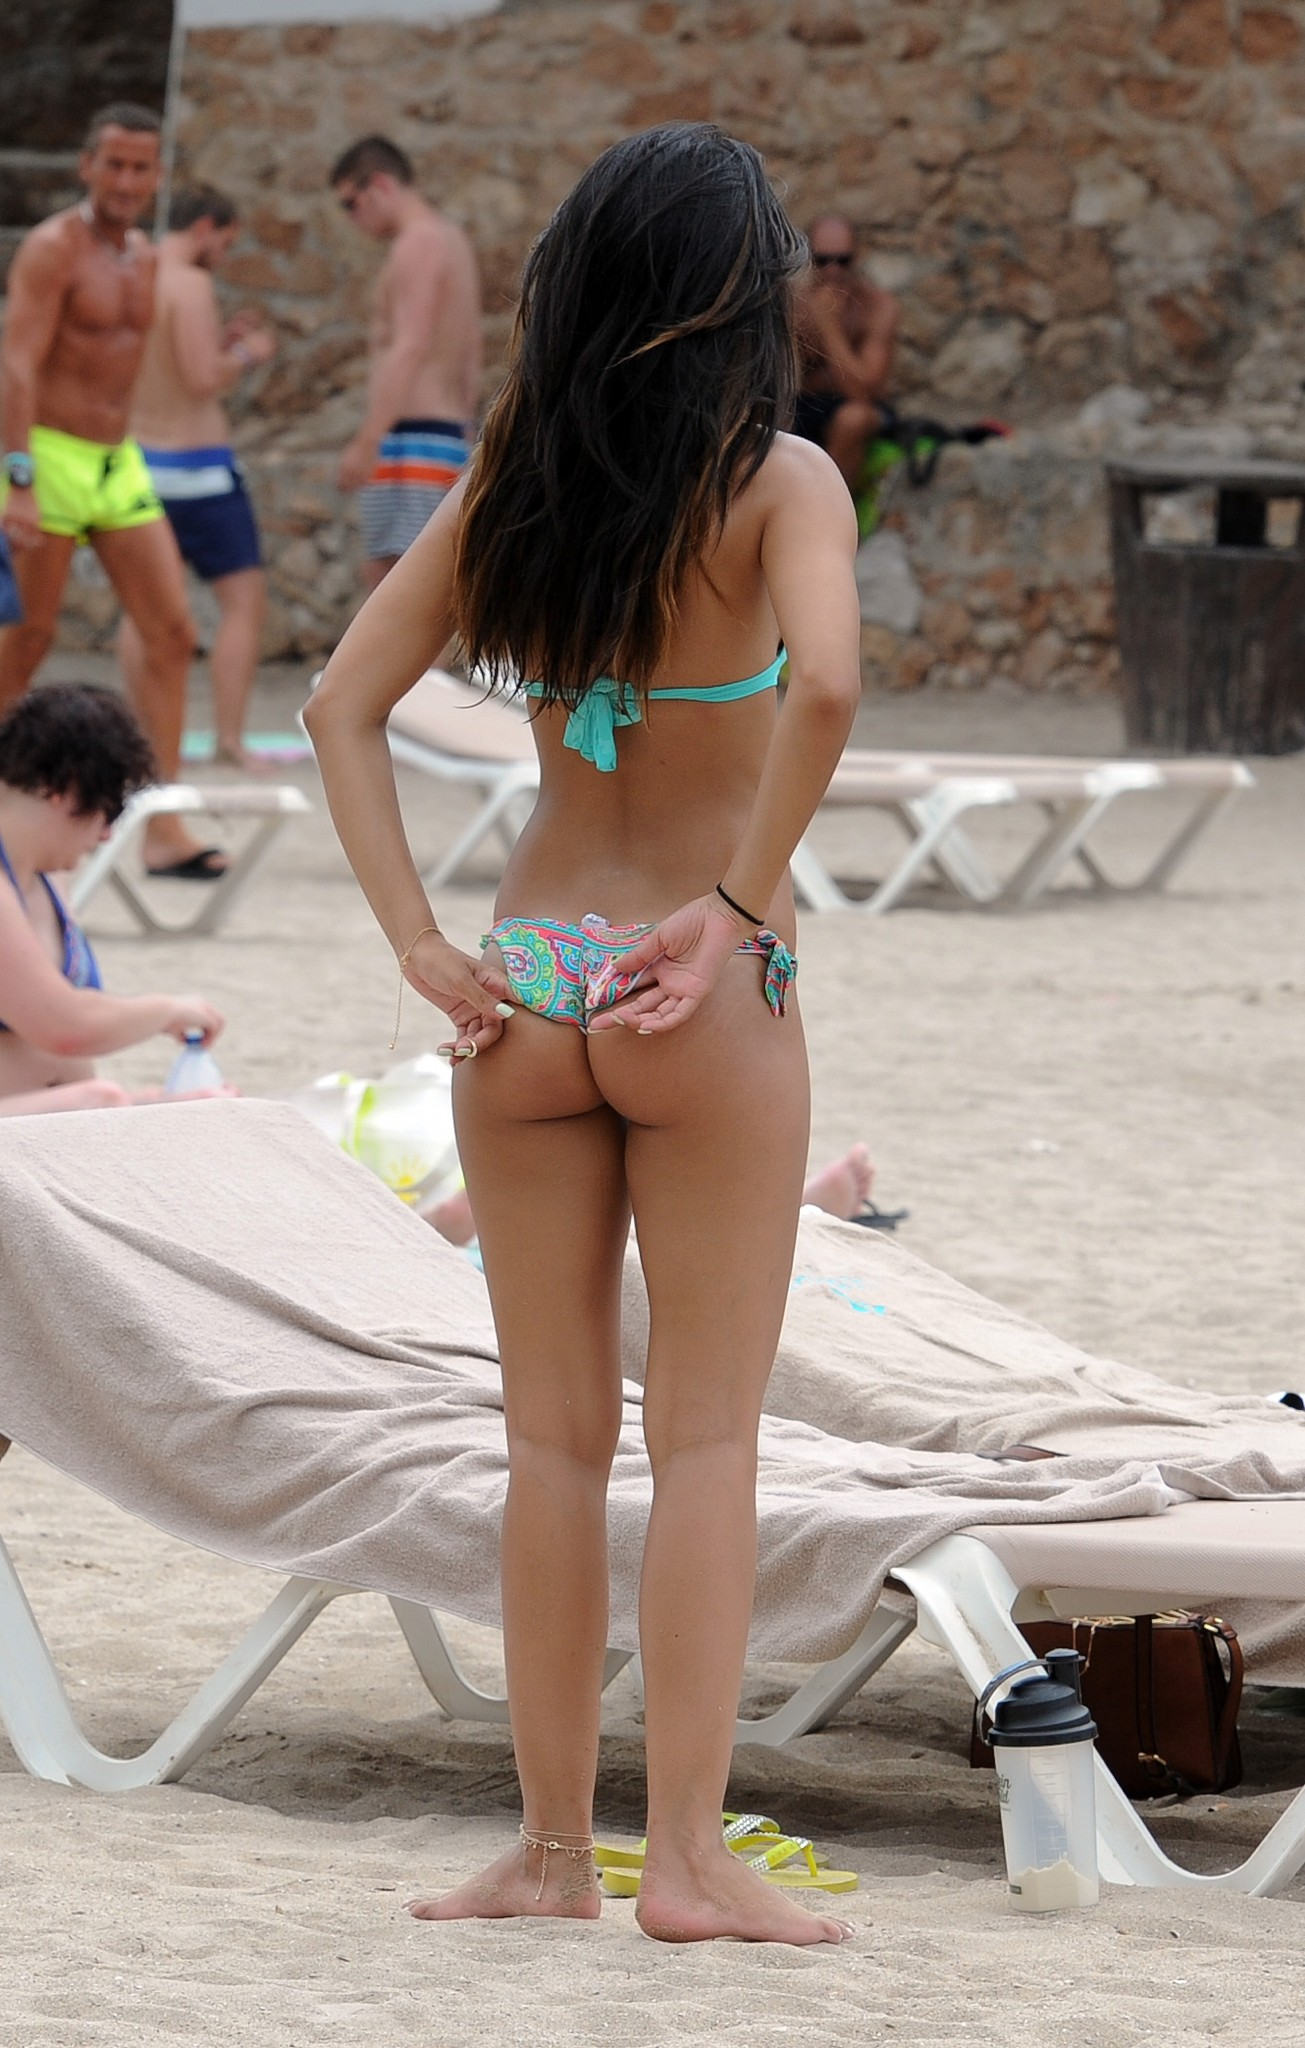 jasmin-walia-wearing-a-bikini-on-the-beach-20